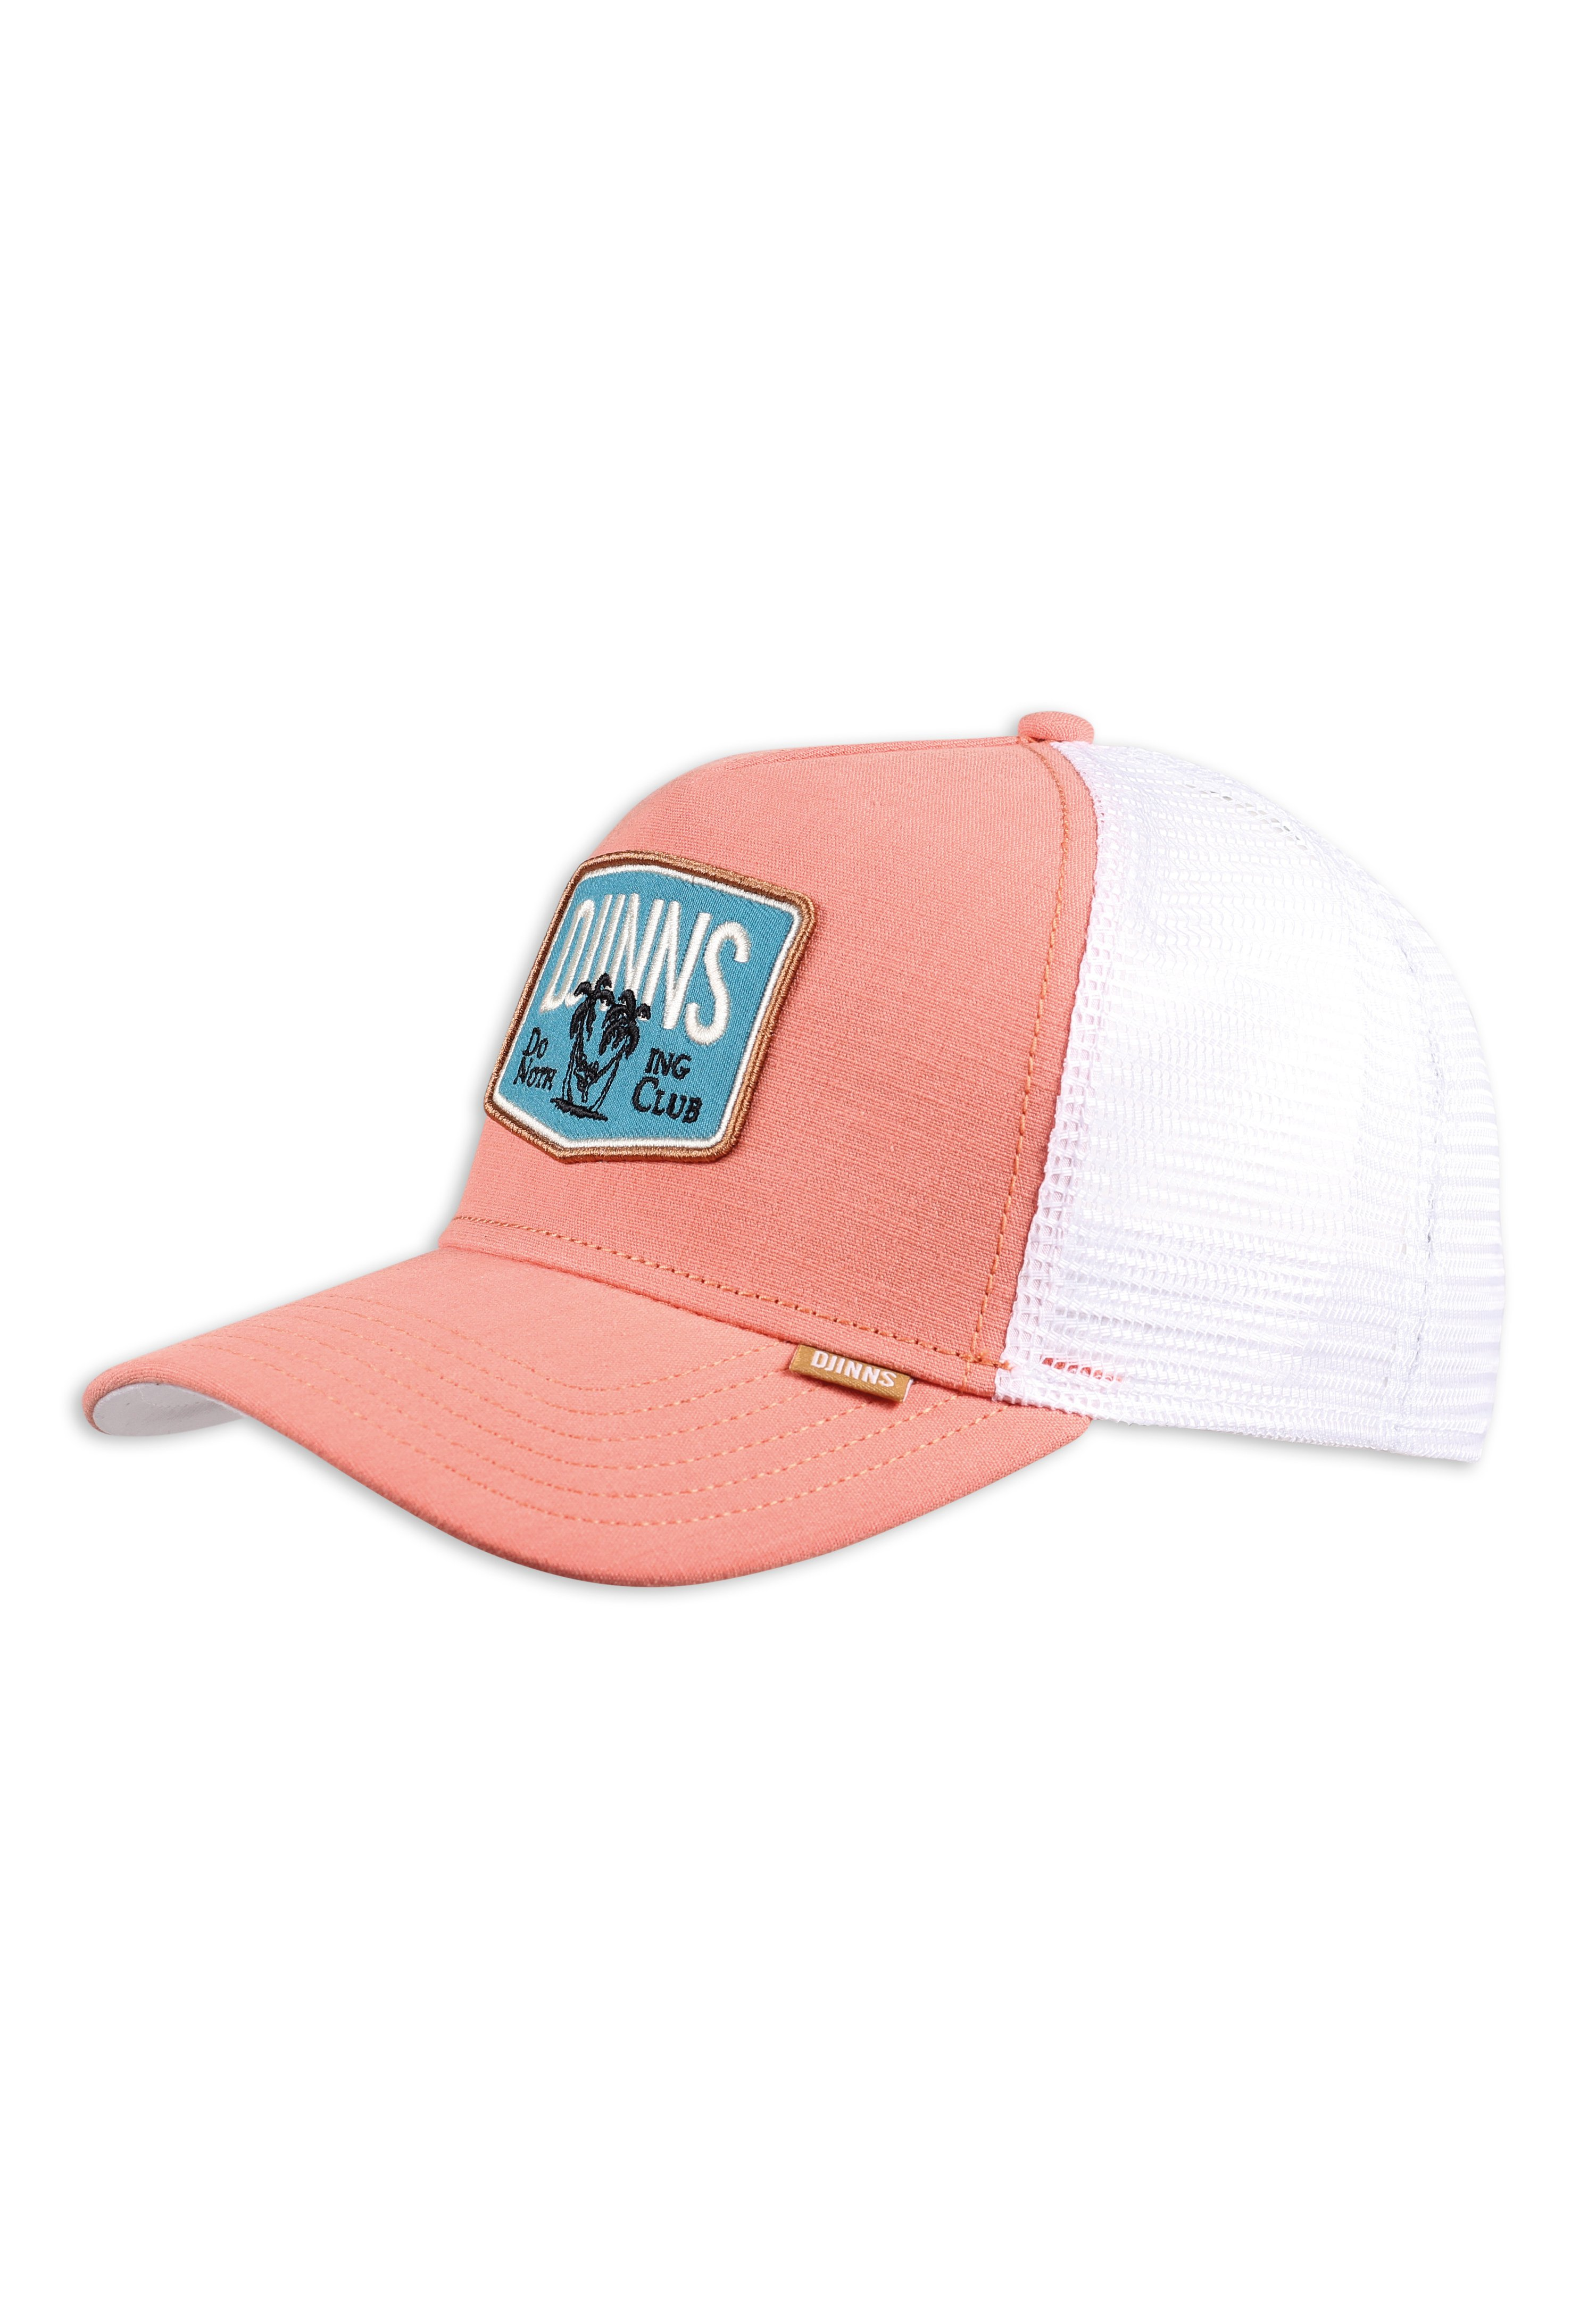 Donna DO NOTHING CLUB SUNNYFAB - Cappellino